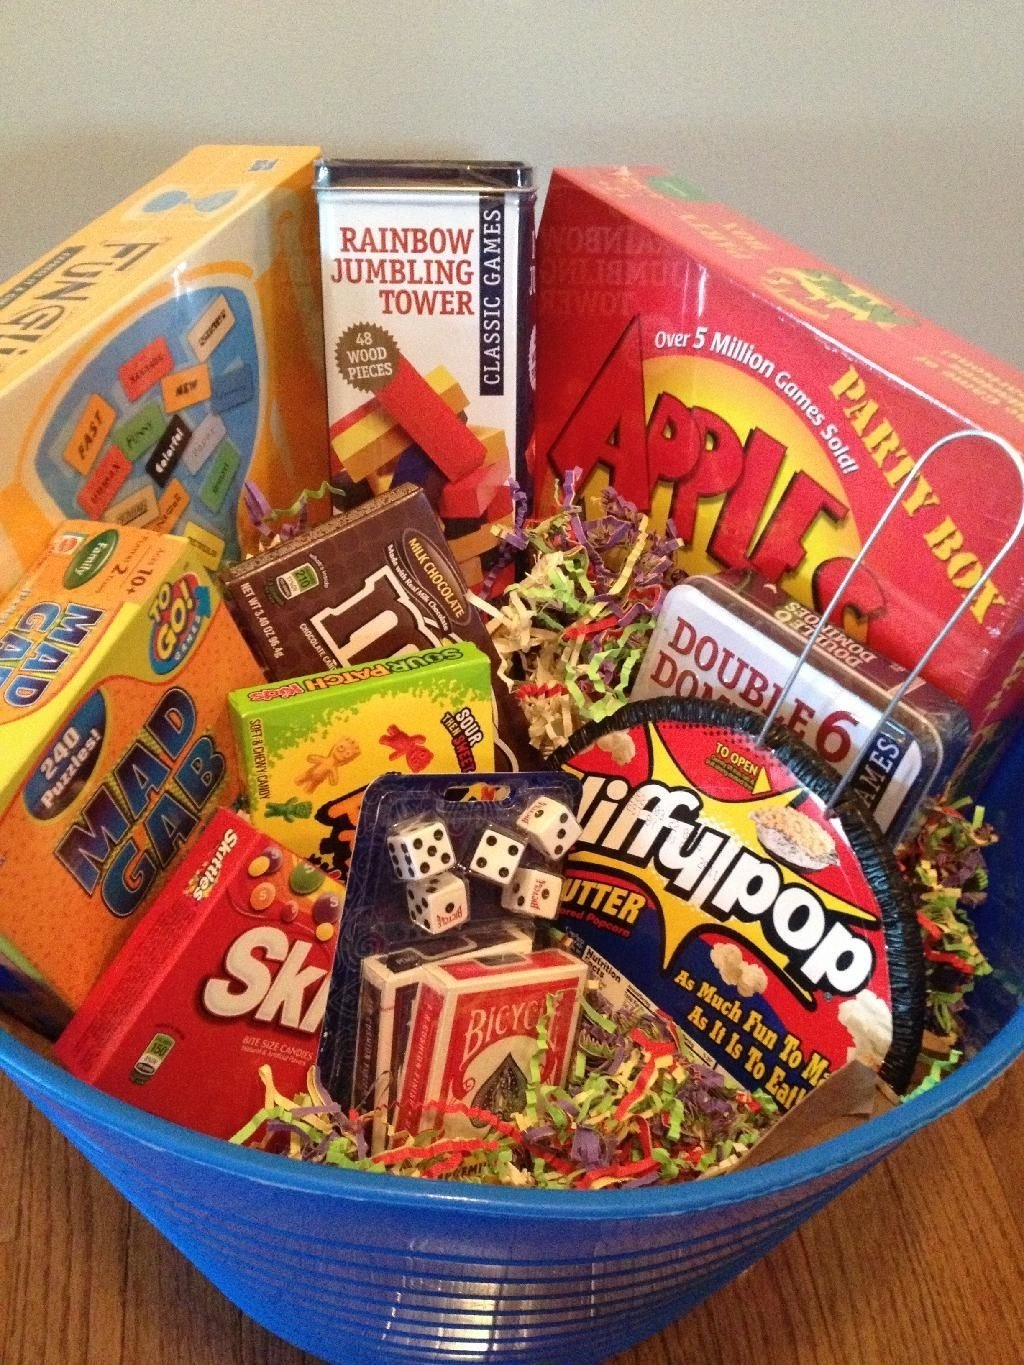 10 Stunning Family Night Gift Basket Ideas 30 christmas gift baskets for all your loved ones family game 1 2021